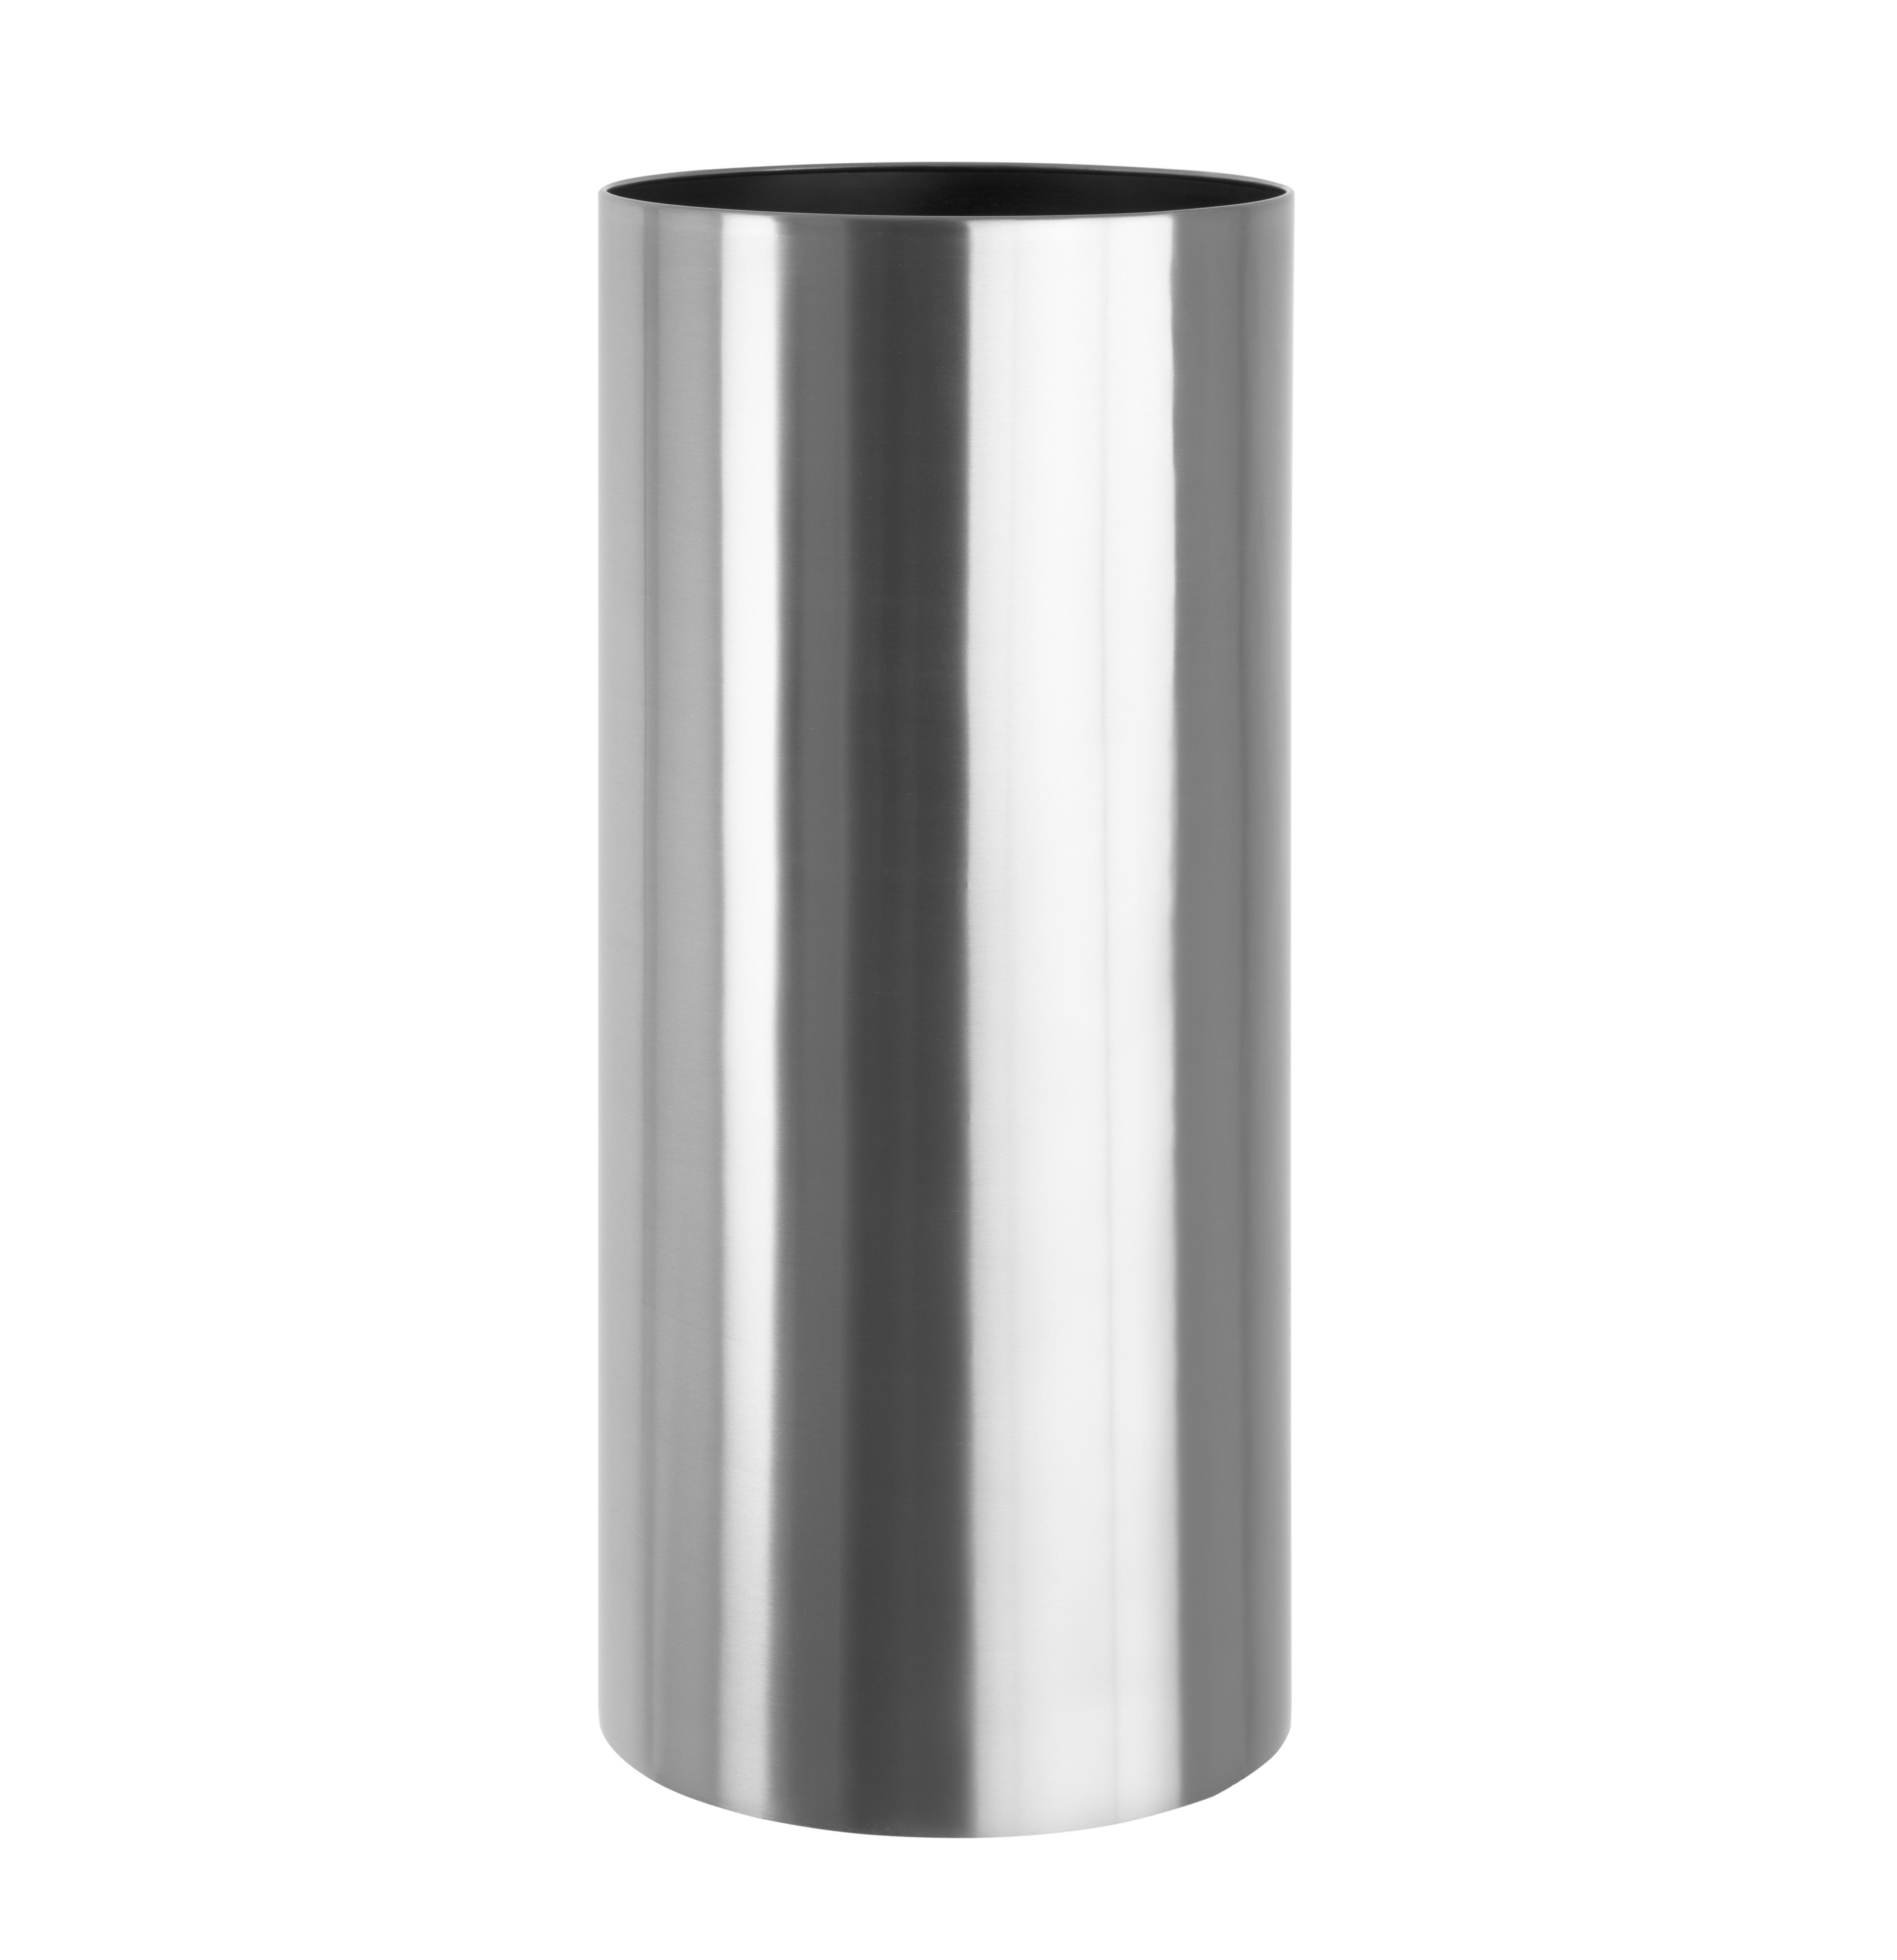 cylinder_circular_planter_stainless_steel_metal_garden_outdoor_brushed_modern_uk_kent